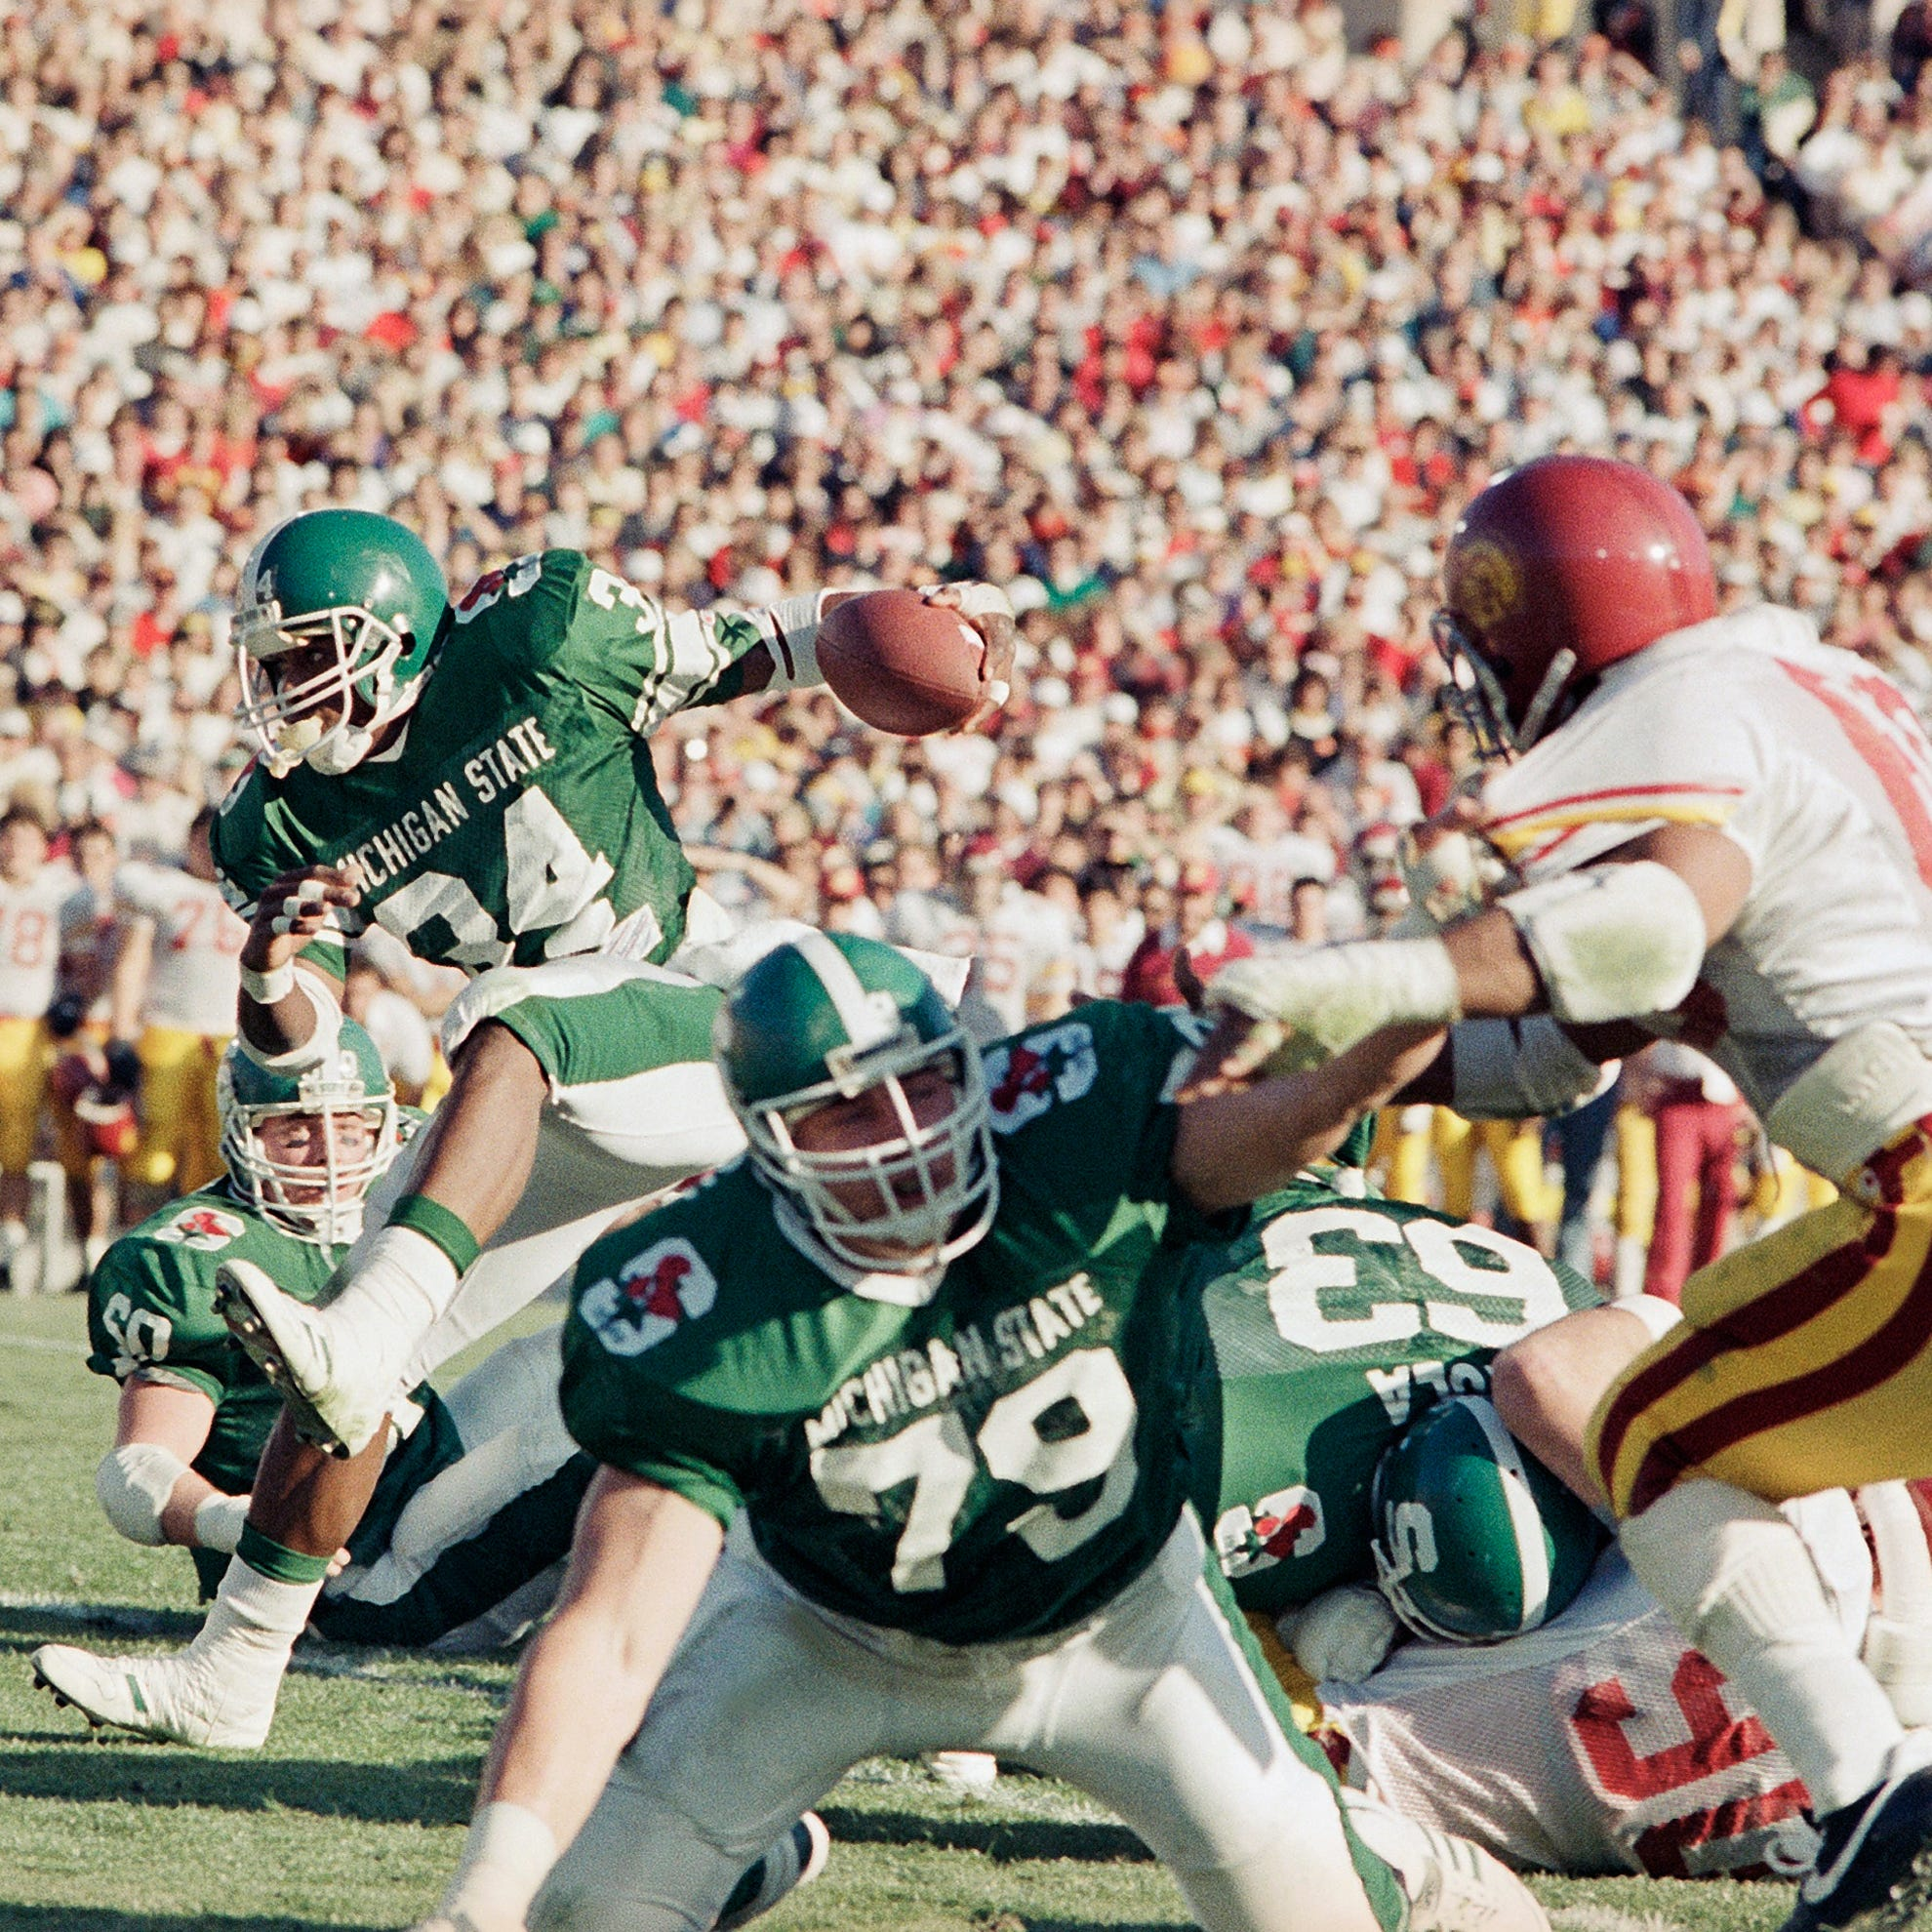 Steroids link took luster off Mandarich, Michigan State's 1988 Rose Bowl victory